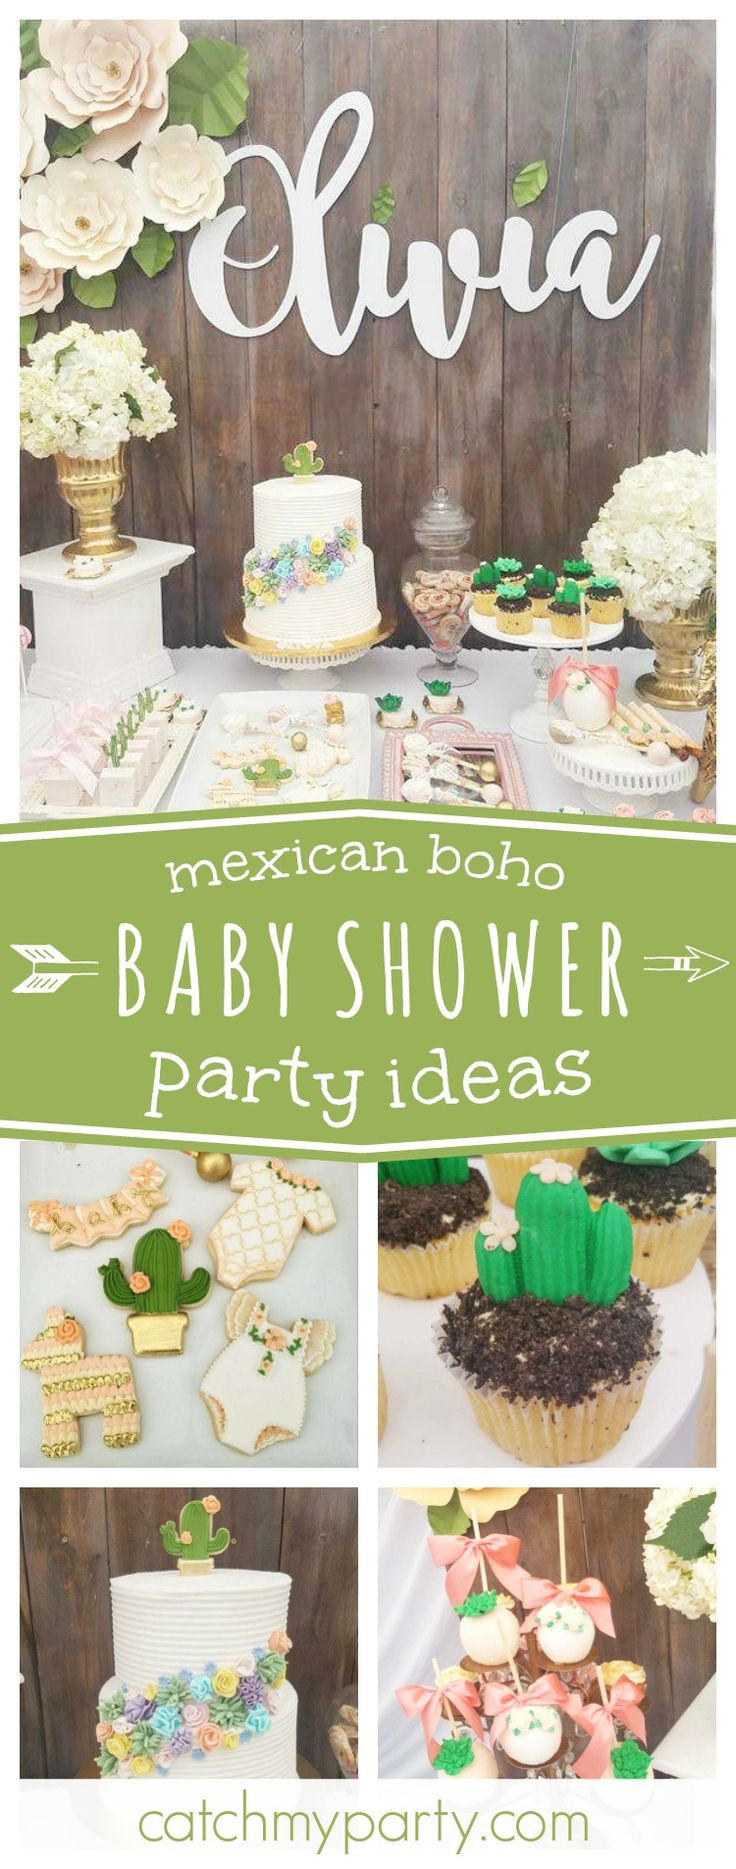 You'll fall in love with this gorgeous mexican boho baby shower. The dessert table is beautiful!! See more party ideas and share yours at CatchMyParty.com